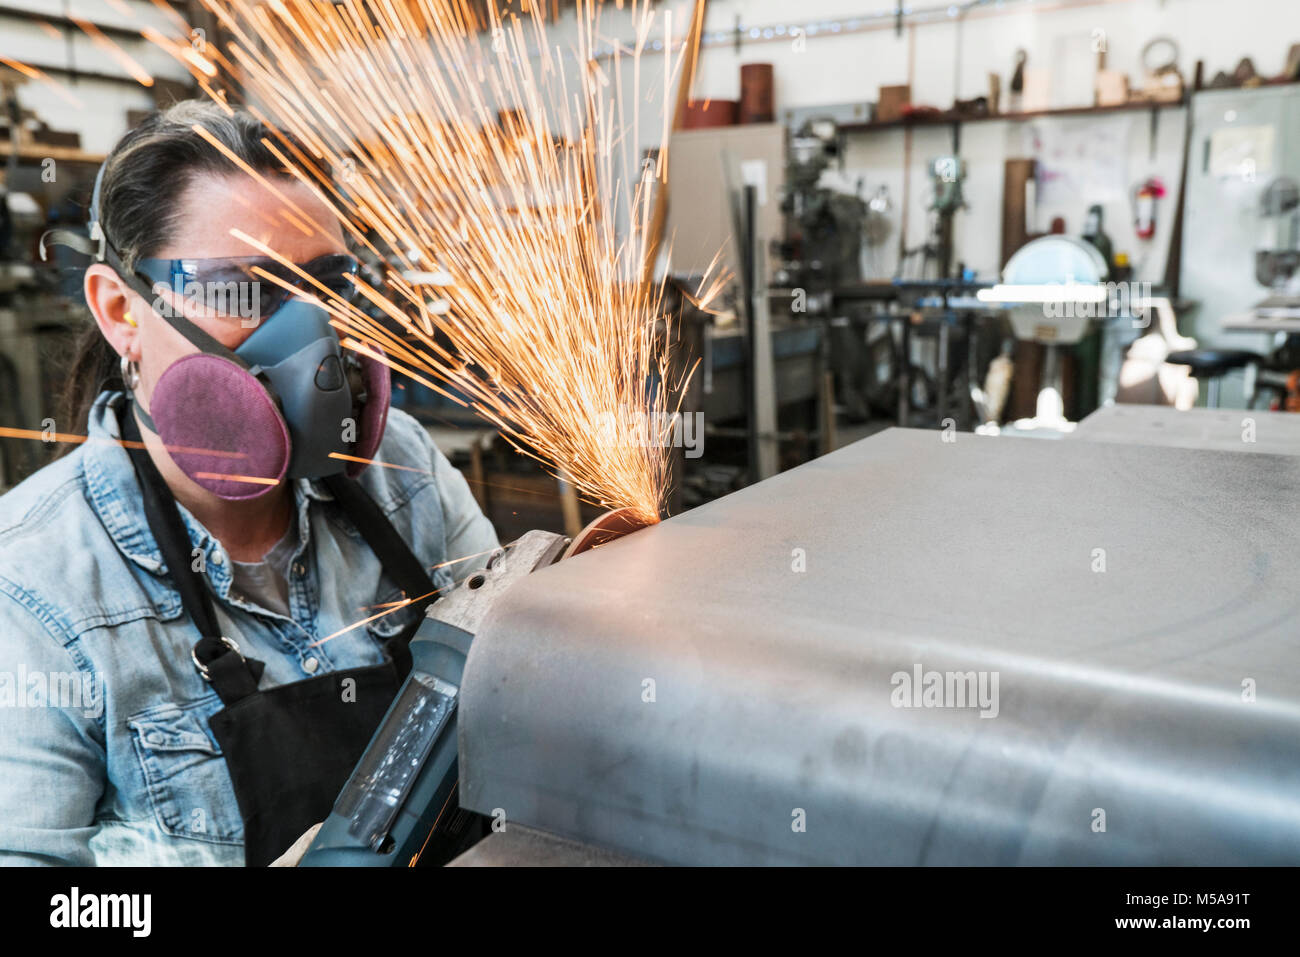 Woman wearing safety glasses and dust mask standing in metal workshop, using power grinder, sparks flying. - Stock Image